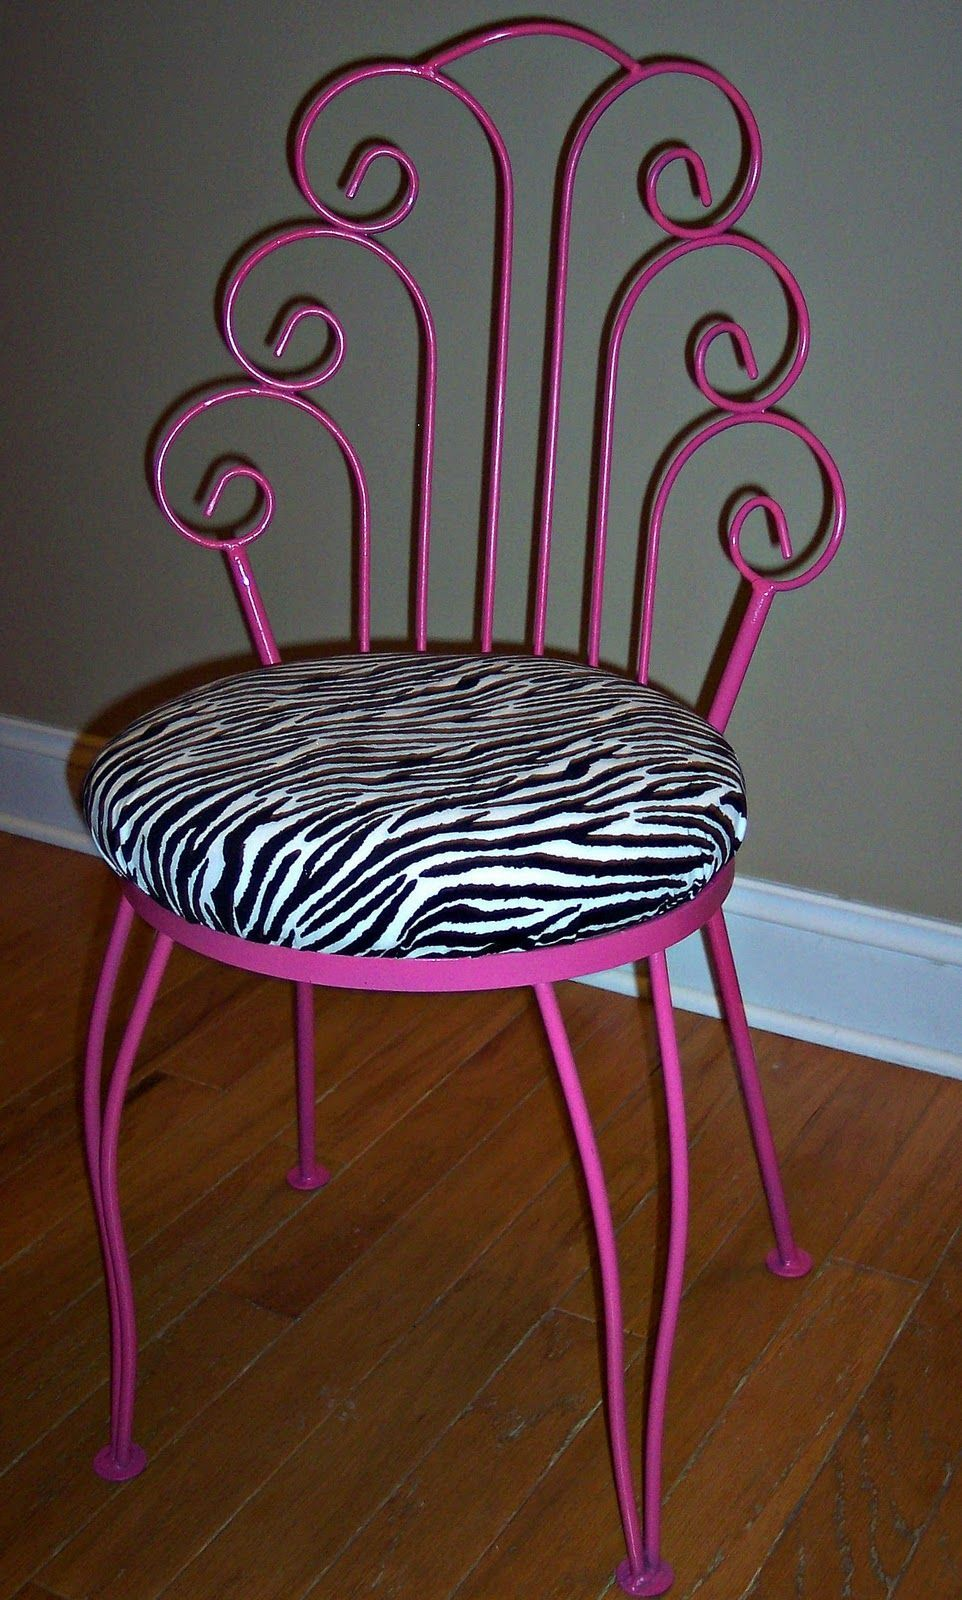 Zebra Desk Chair Hot Pink Desk Chair Uniquely Chic A Little Hot Pink And Zebra